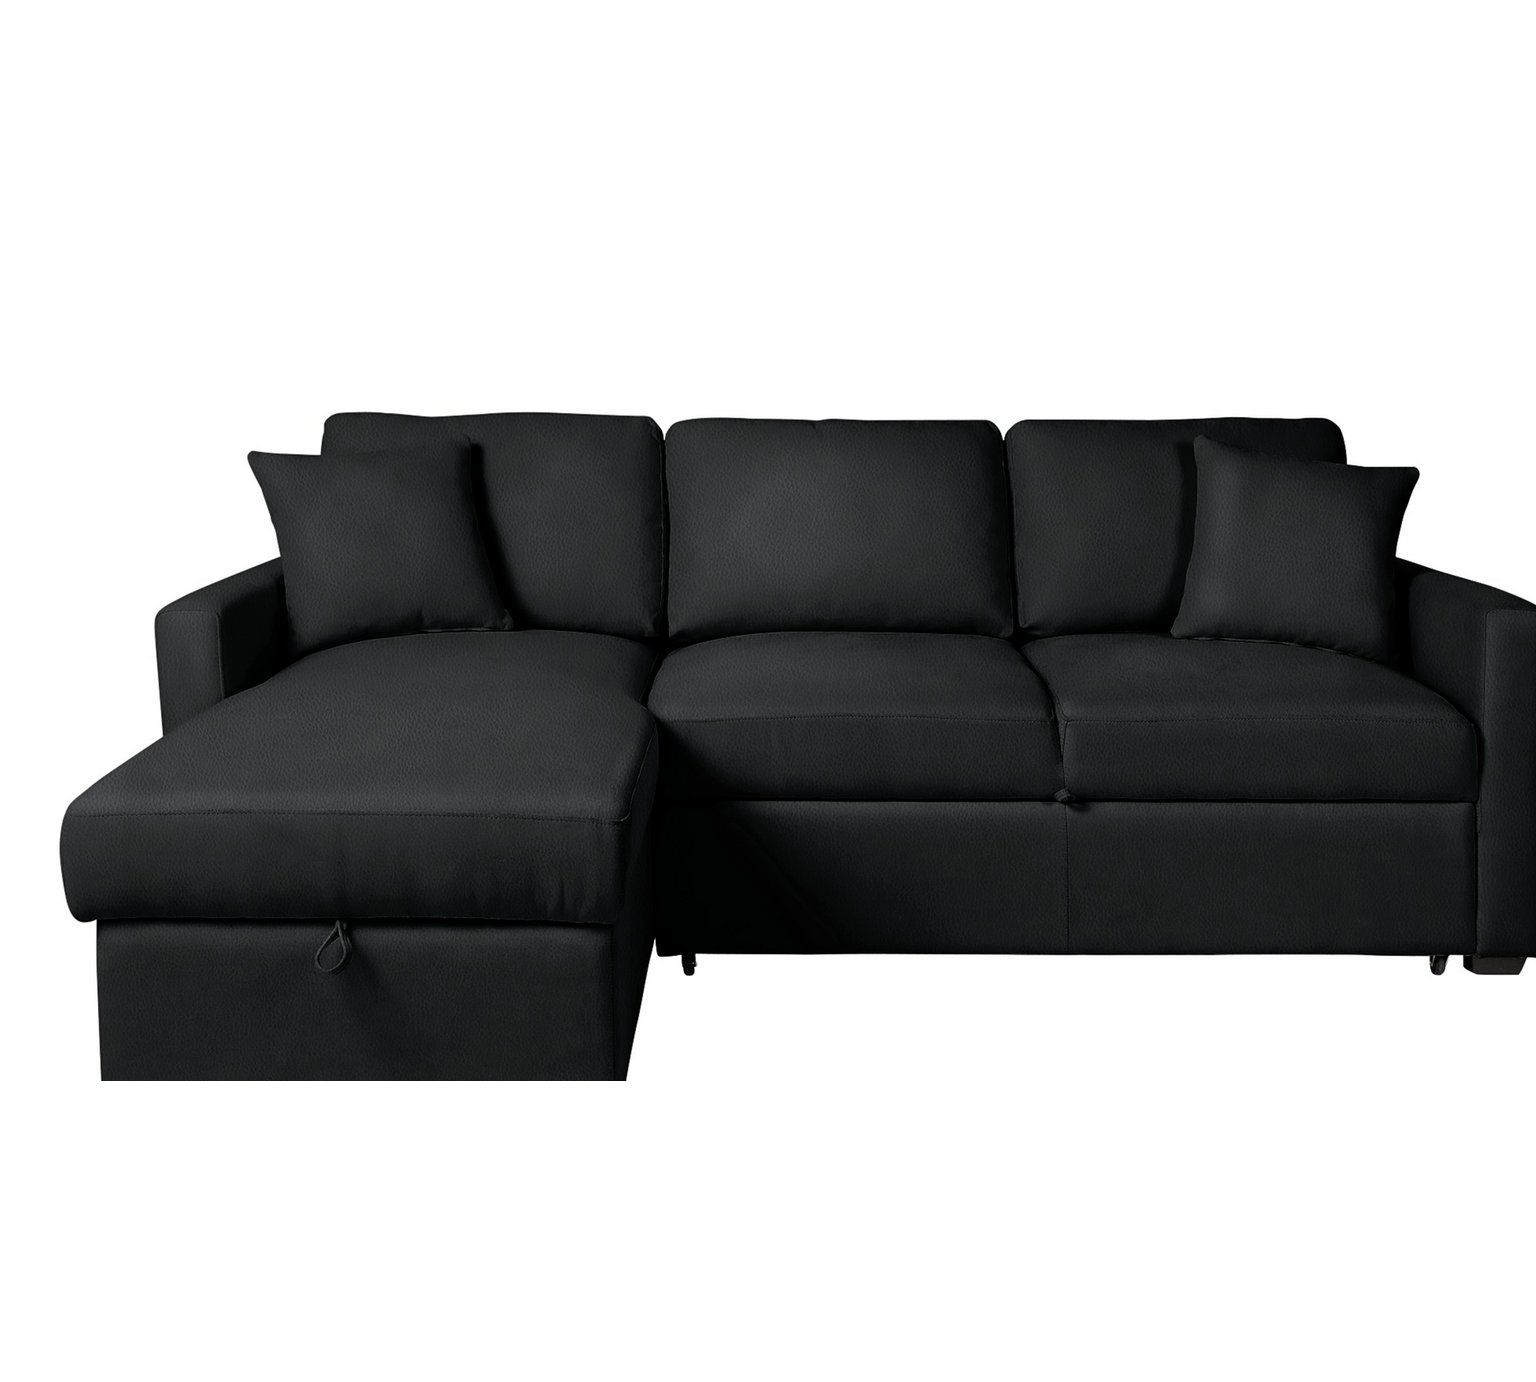 Awesome Home Reagan Left Corner Faux Leather Sofa Bed Black Pdpeps Interior Chair Design Pdpepsorg